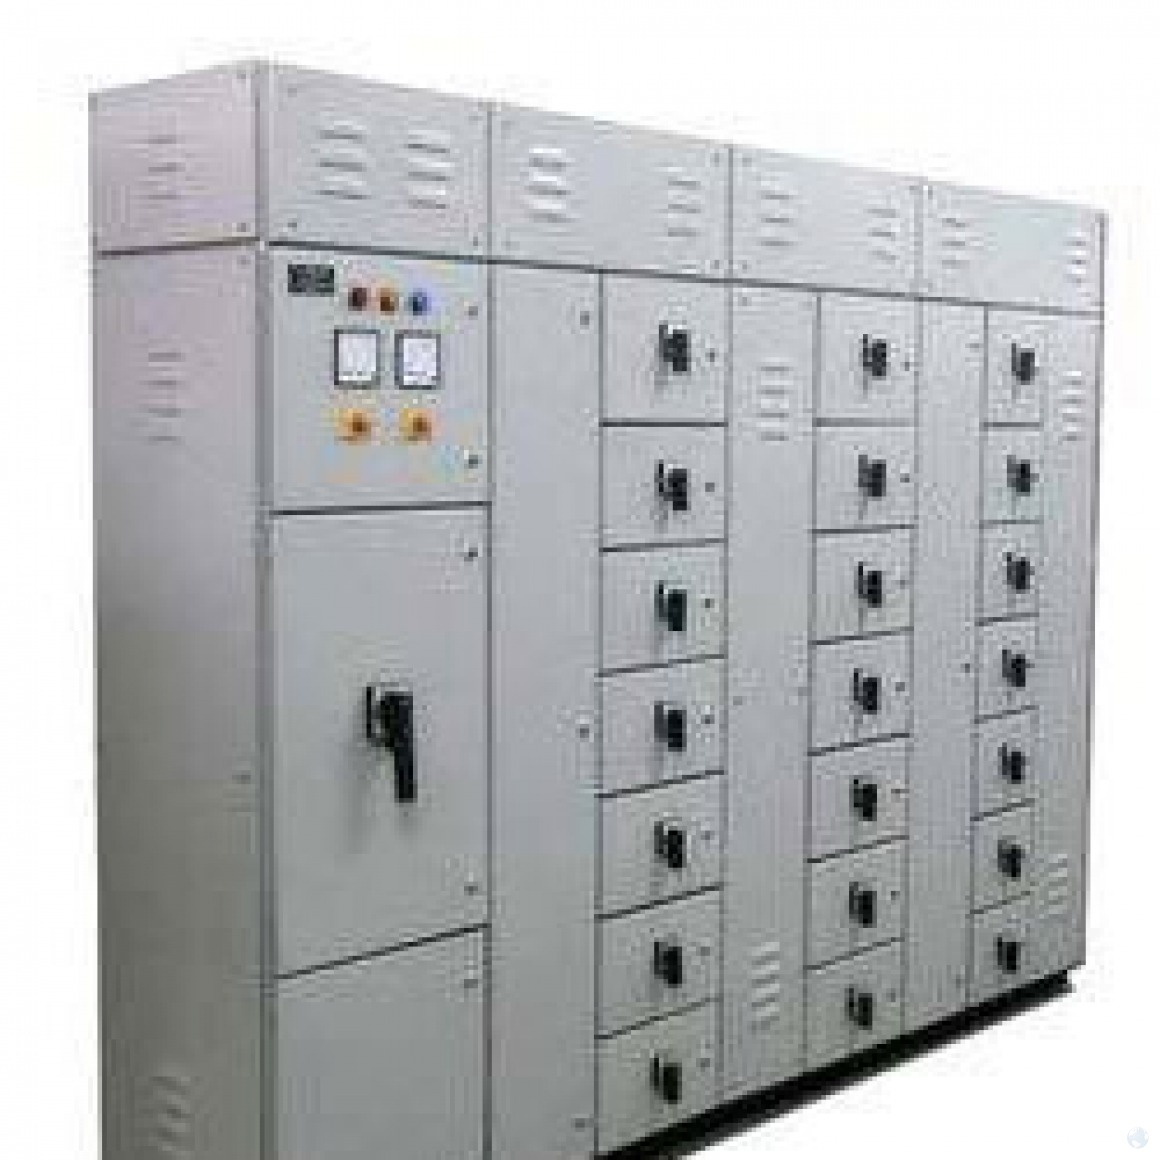 Dhora Power Systems